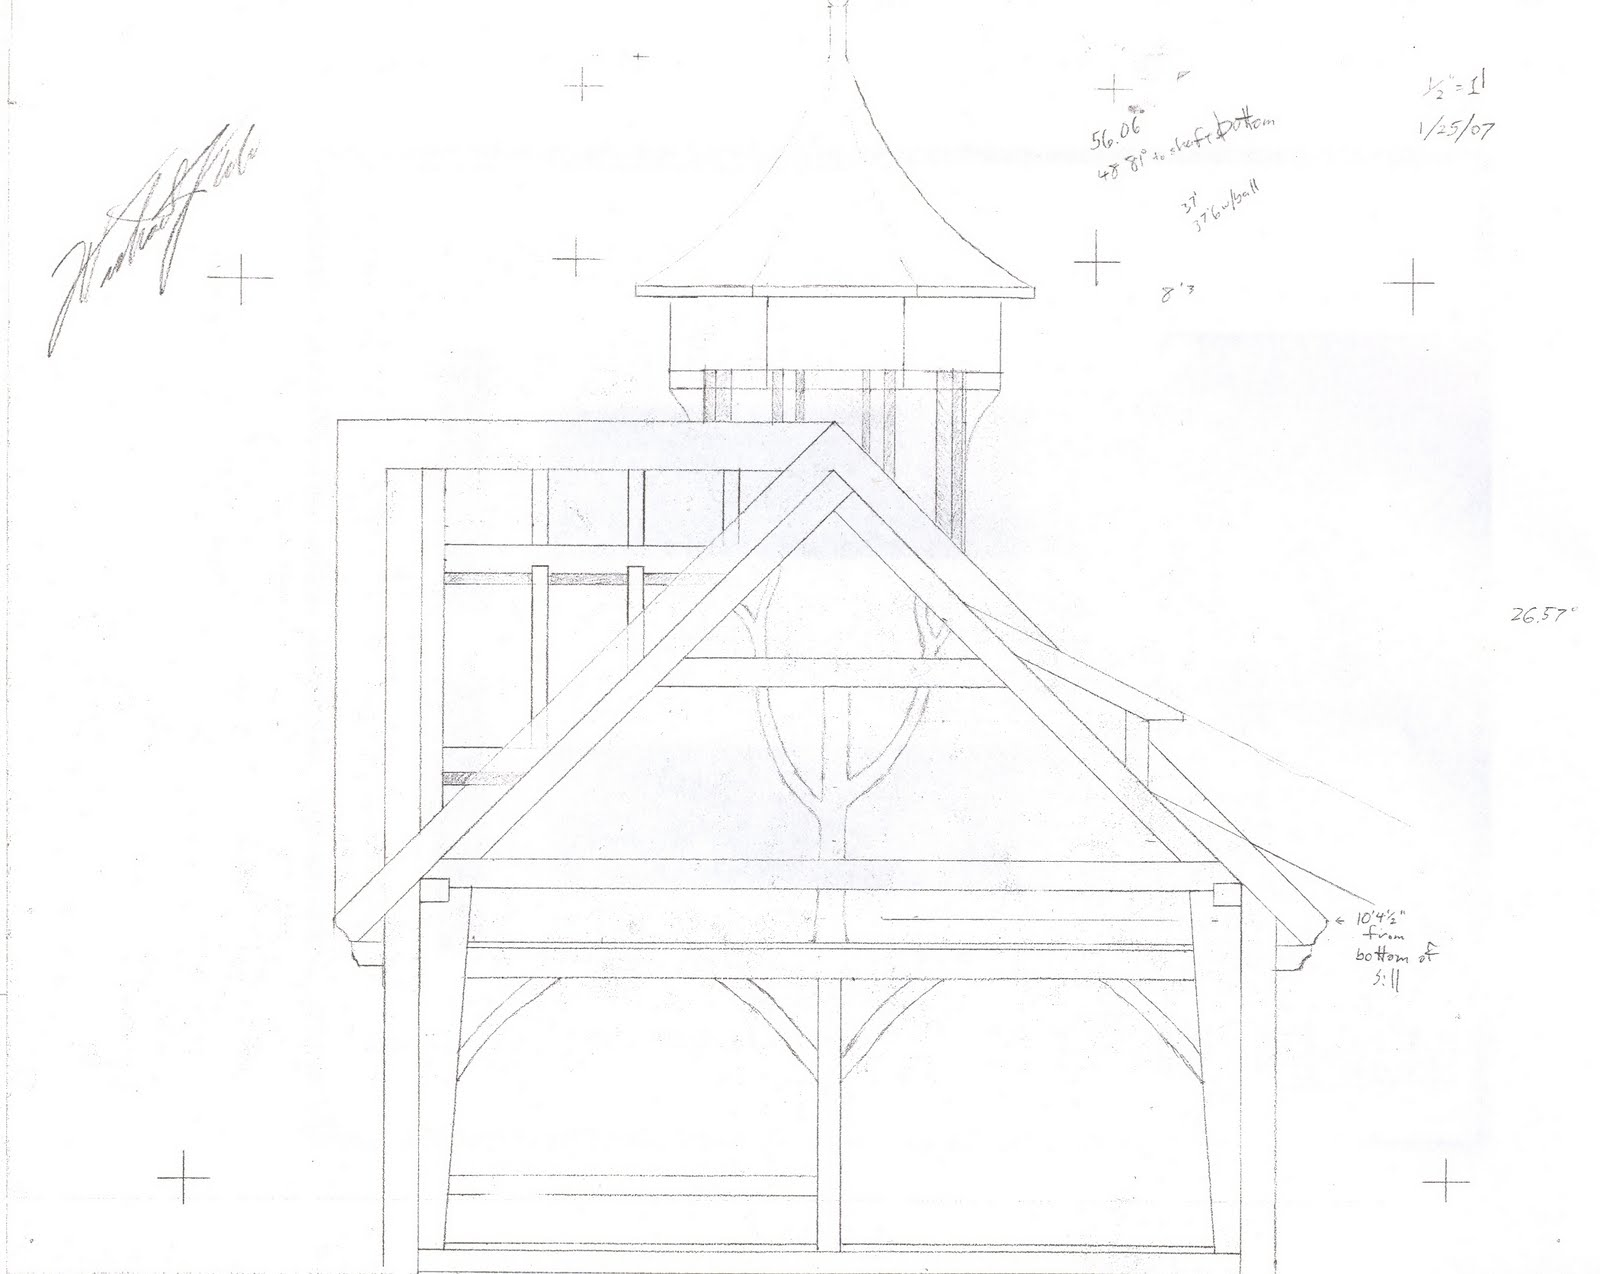 Detail of the gable for a home in Marshfield.